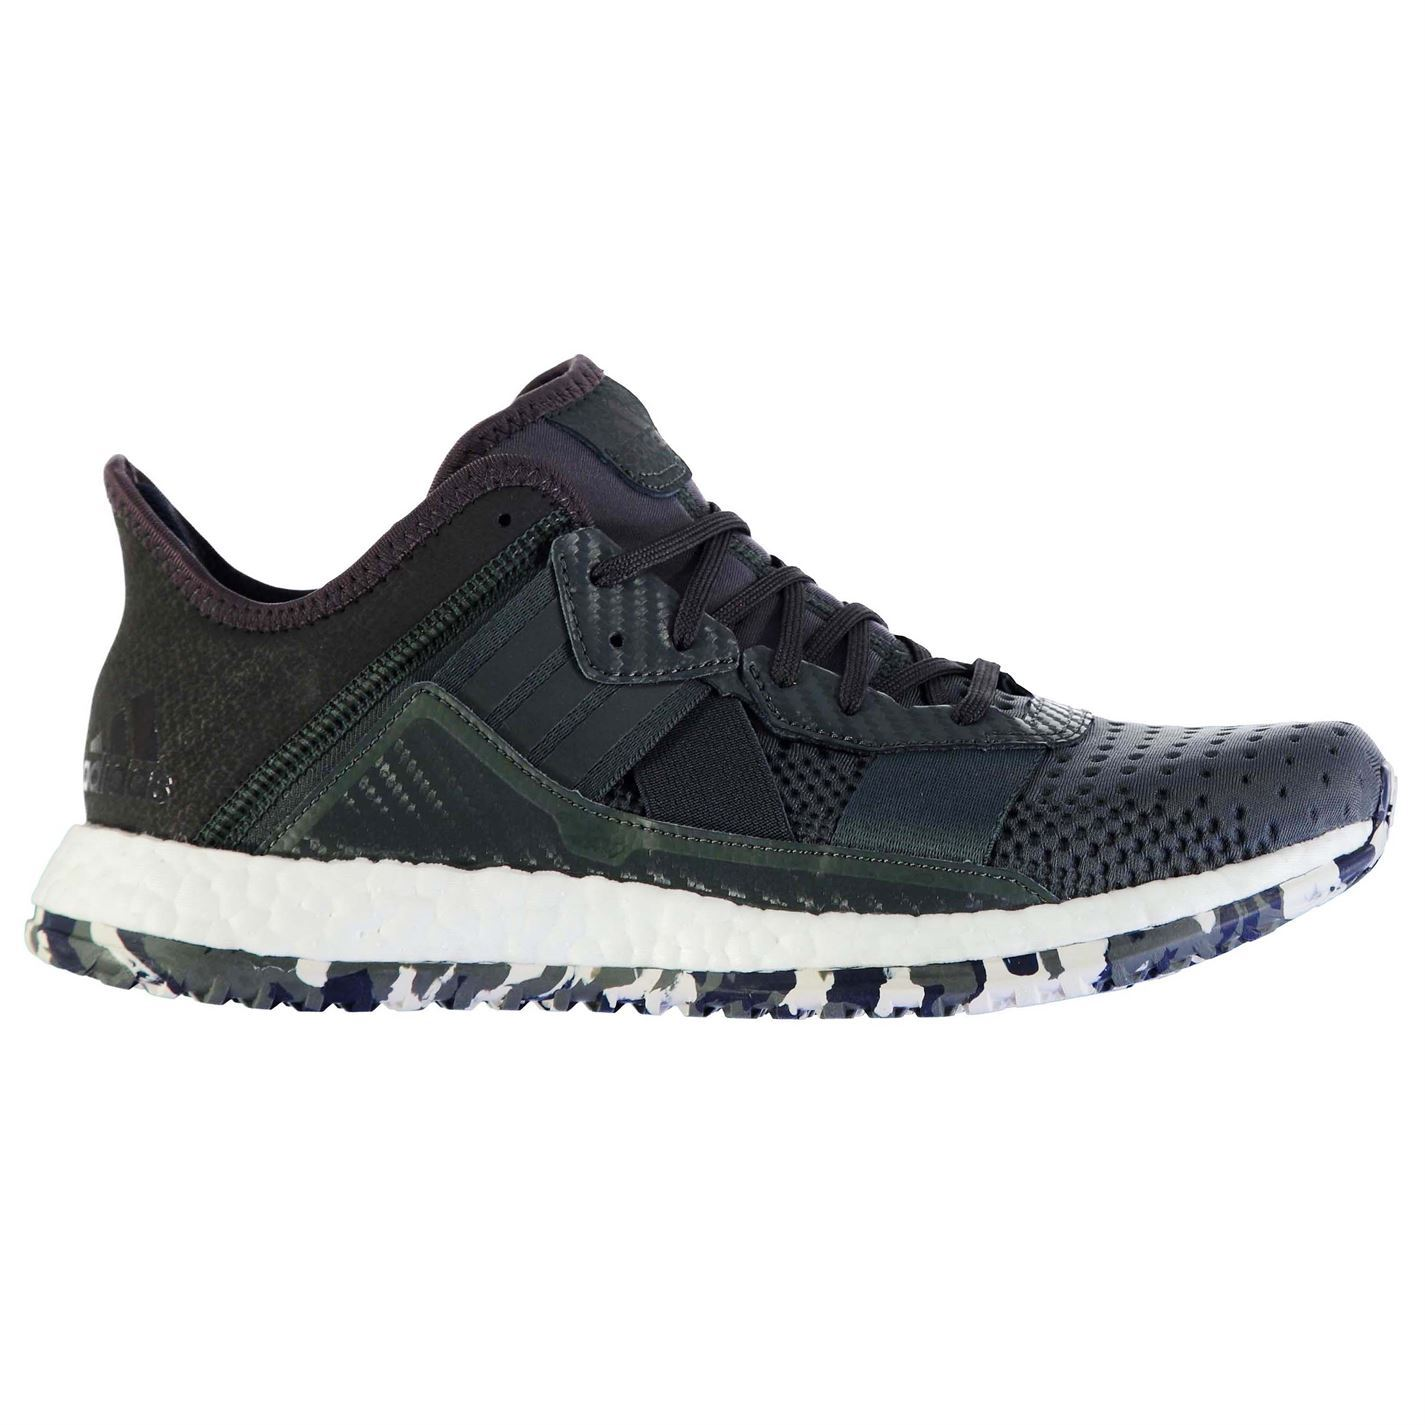 18a5035e689e2 ... italy adidas pure boost zg running shoes mens vy black trainers  sneakers sports shoes 3ec9d 6cb68